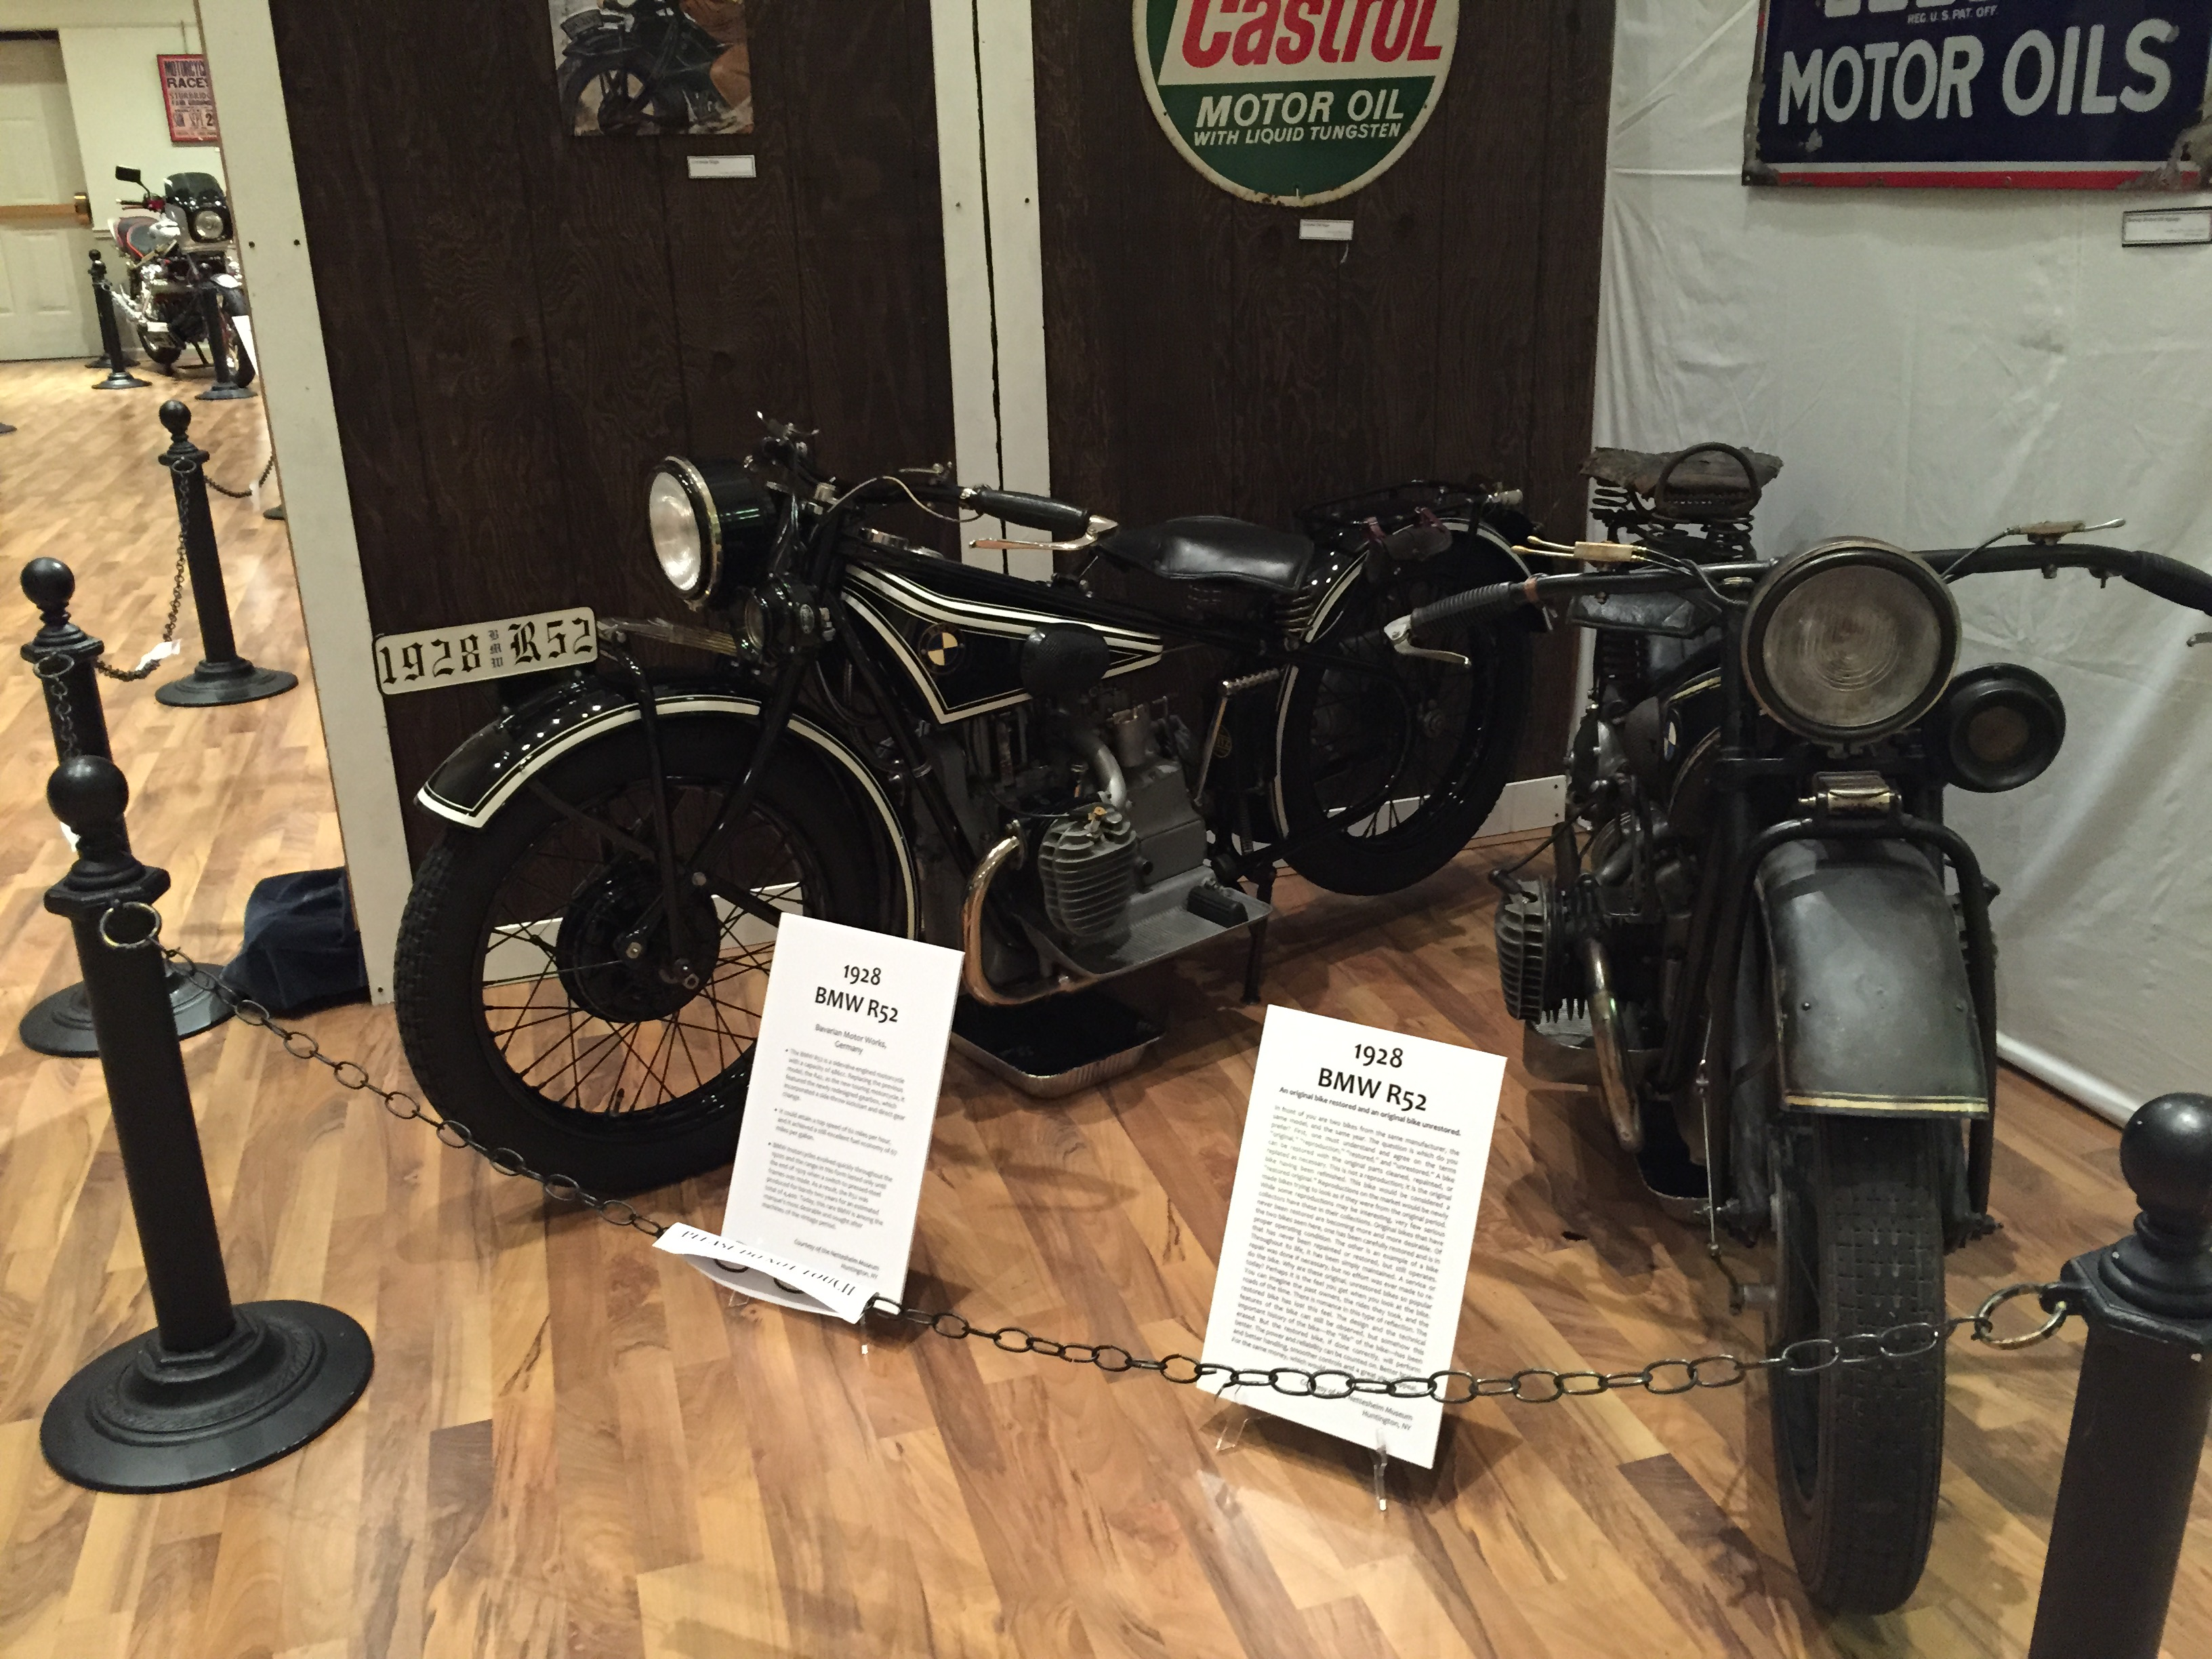 A restored and unrestored 1928 BMW R52 side by side at the WMHO Educational & Cultural Center